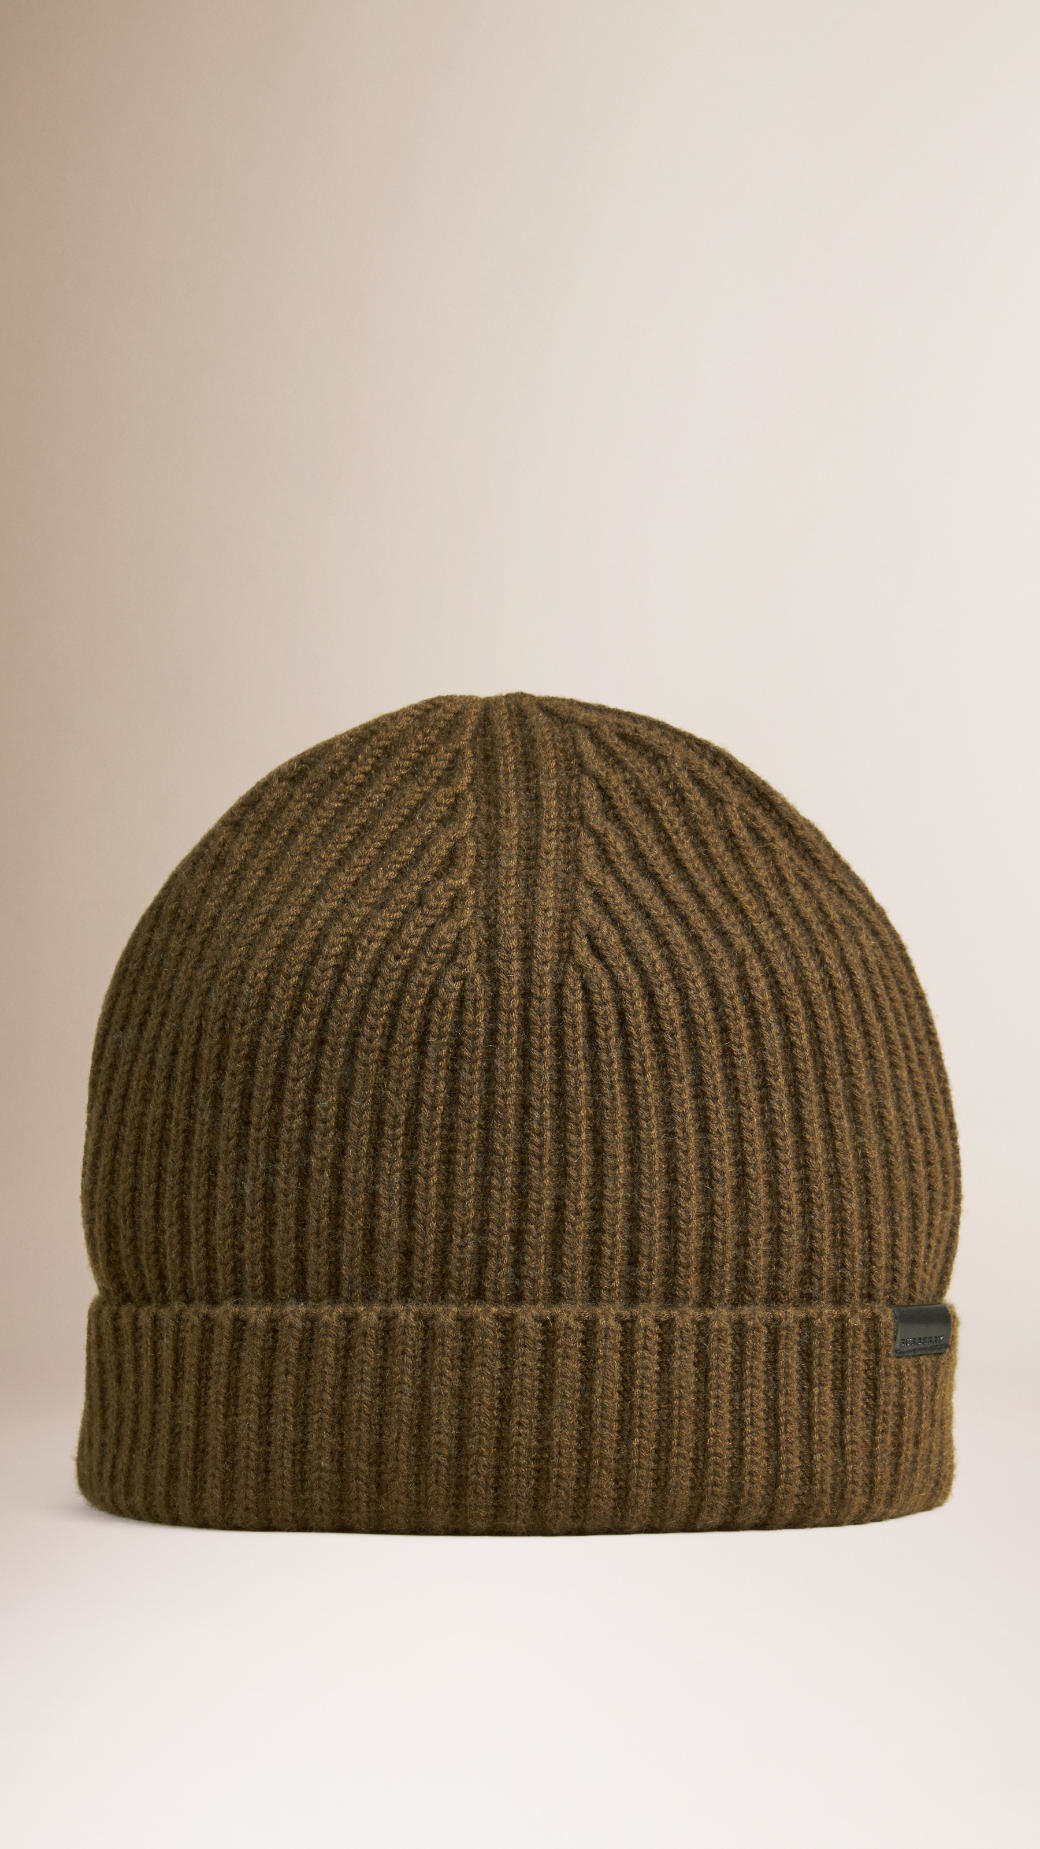 Knitting Pattern For Cashmere Beanie : Burberry Cashmere Rib Knit Beanie Olive Green in Green for ...